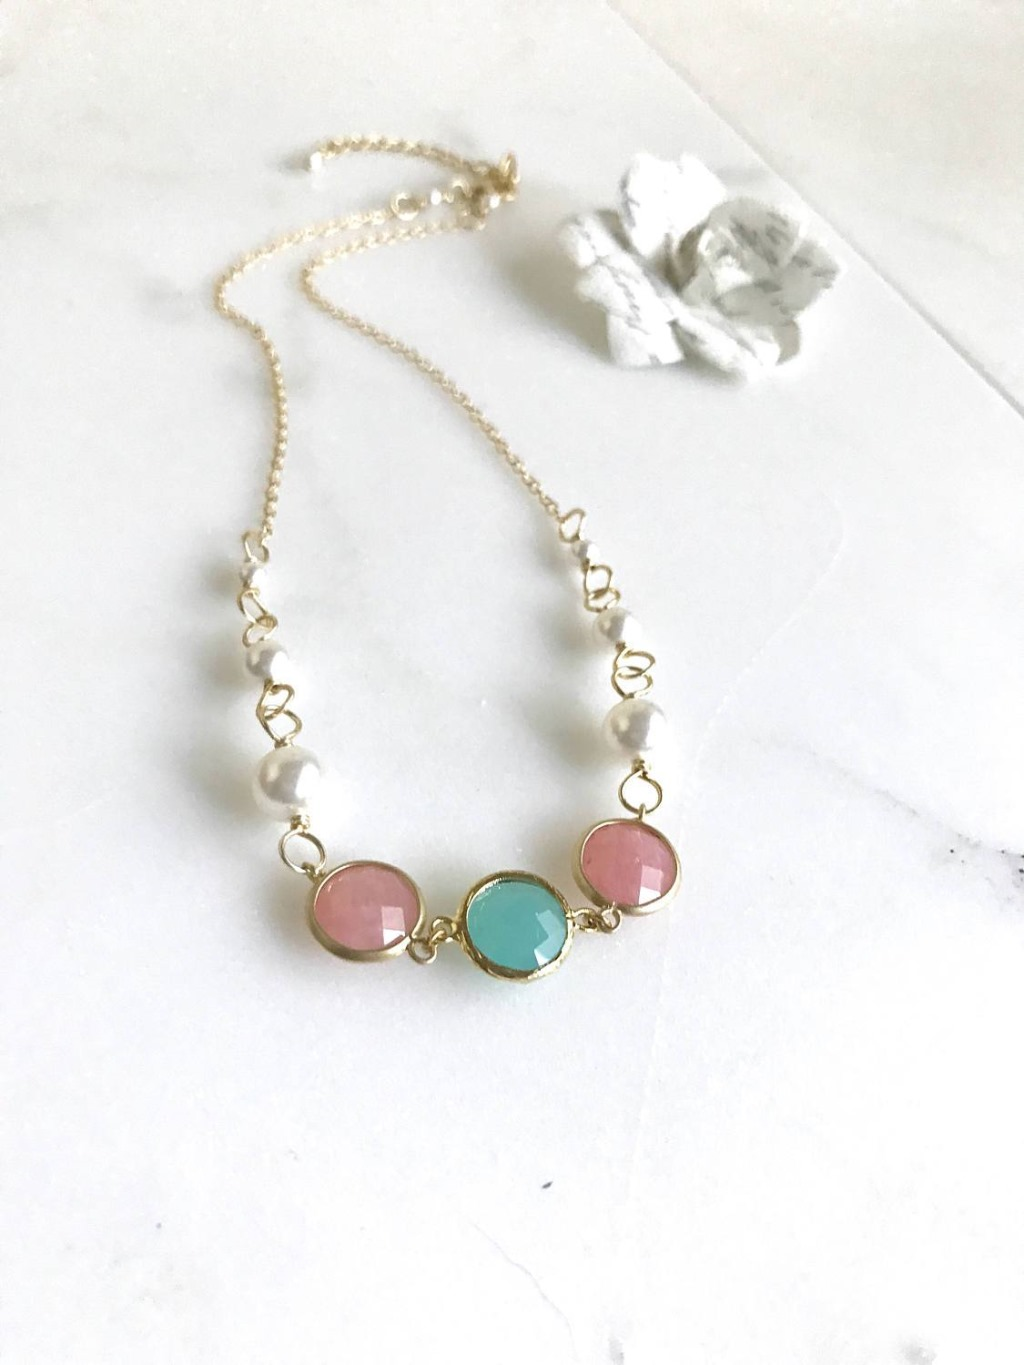 This necklace is very elegant and yet also has a pop of color with the framed stones in coral pink and turquoise. Elegant and yet very